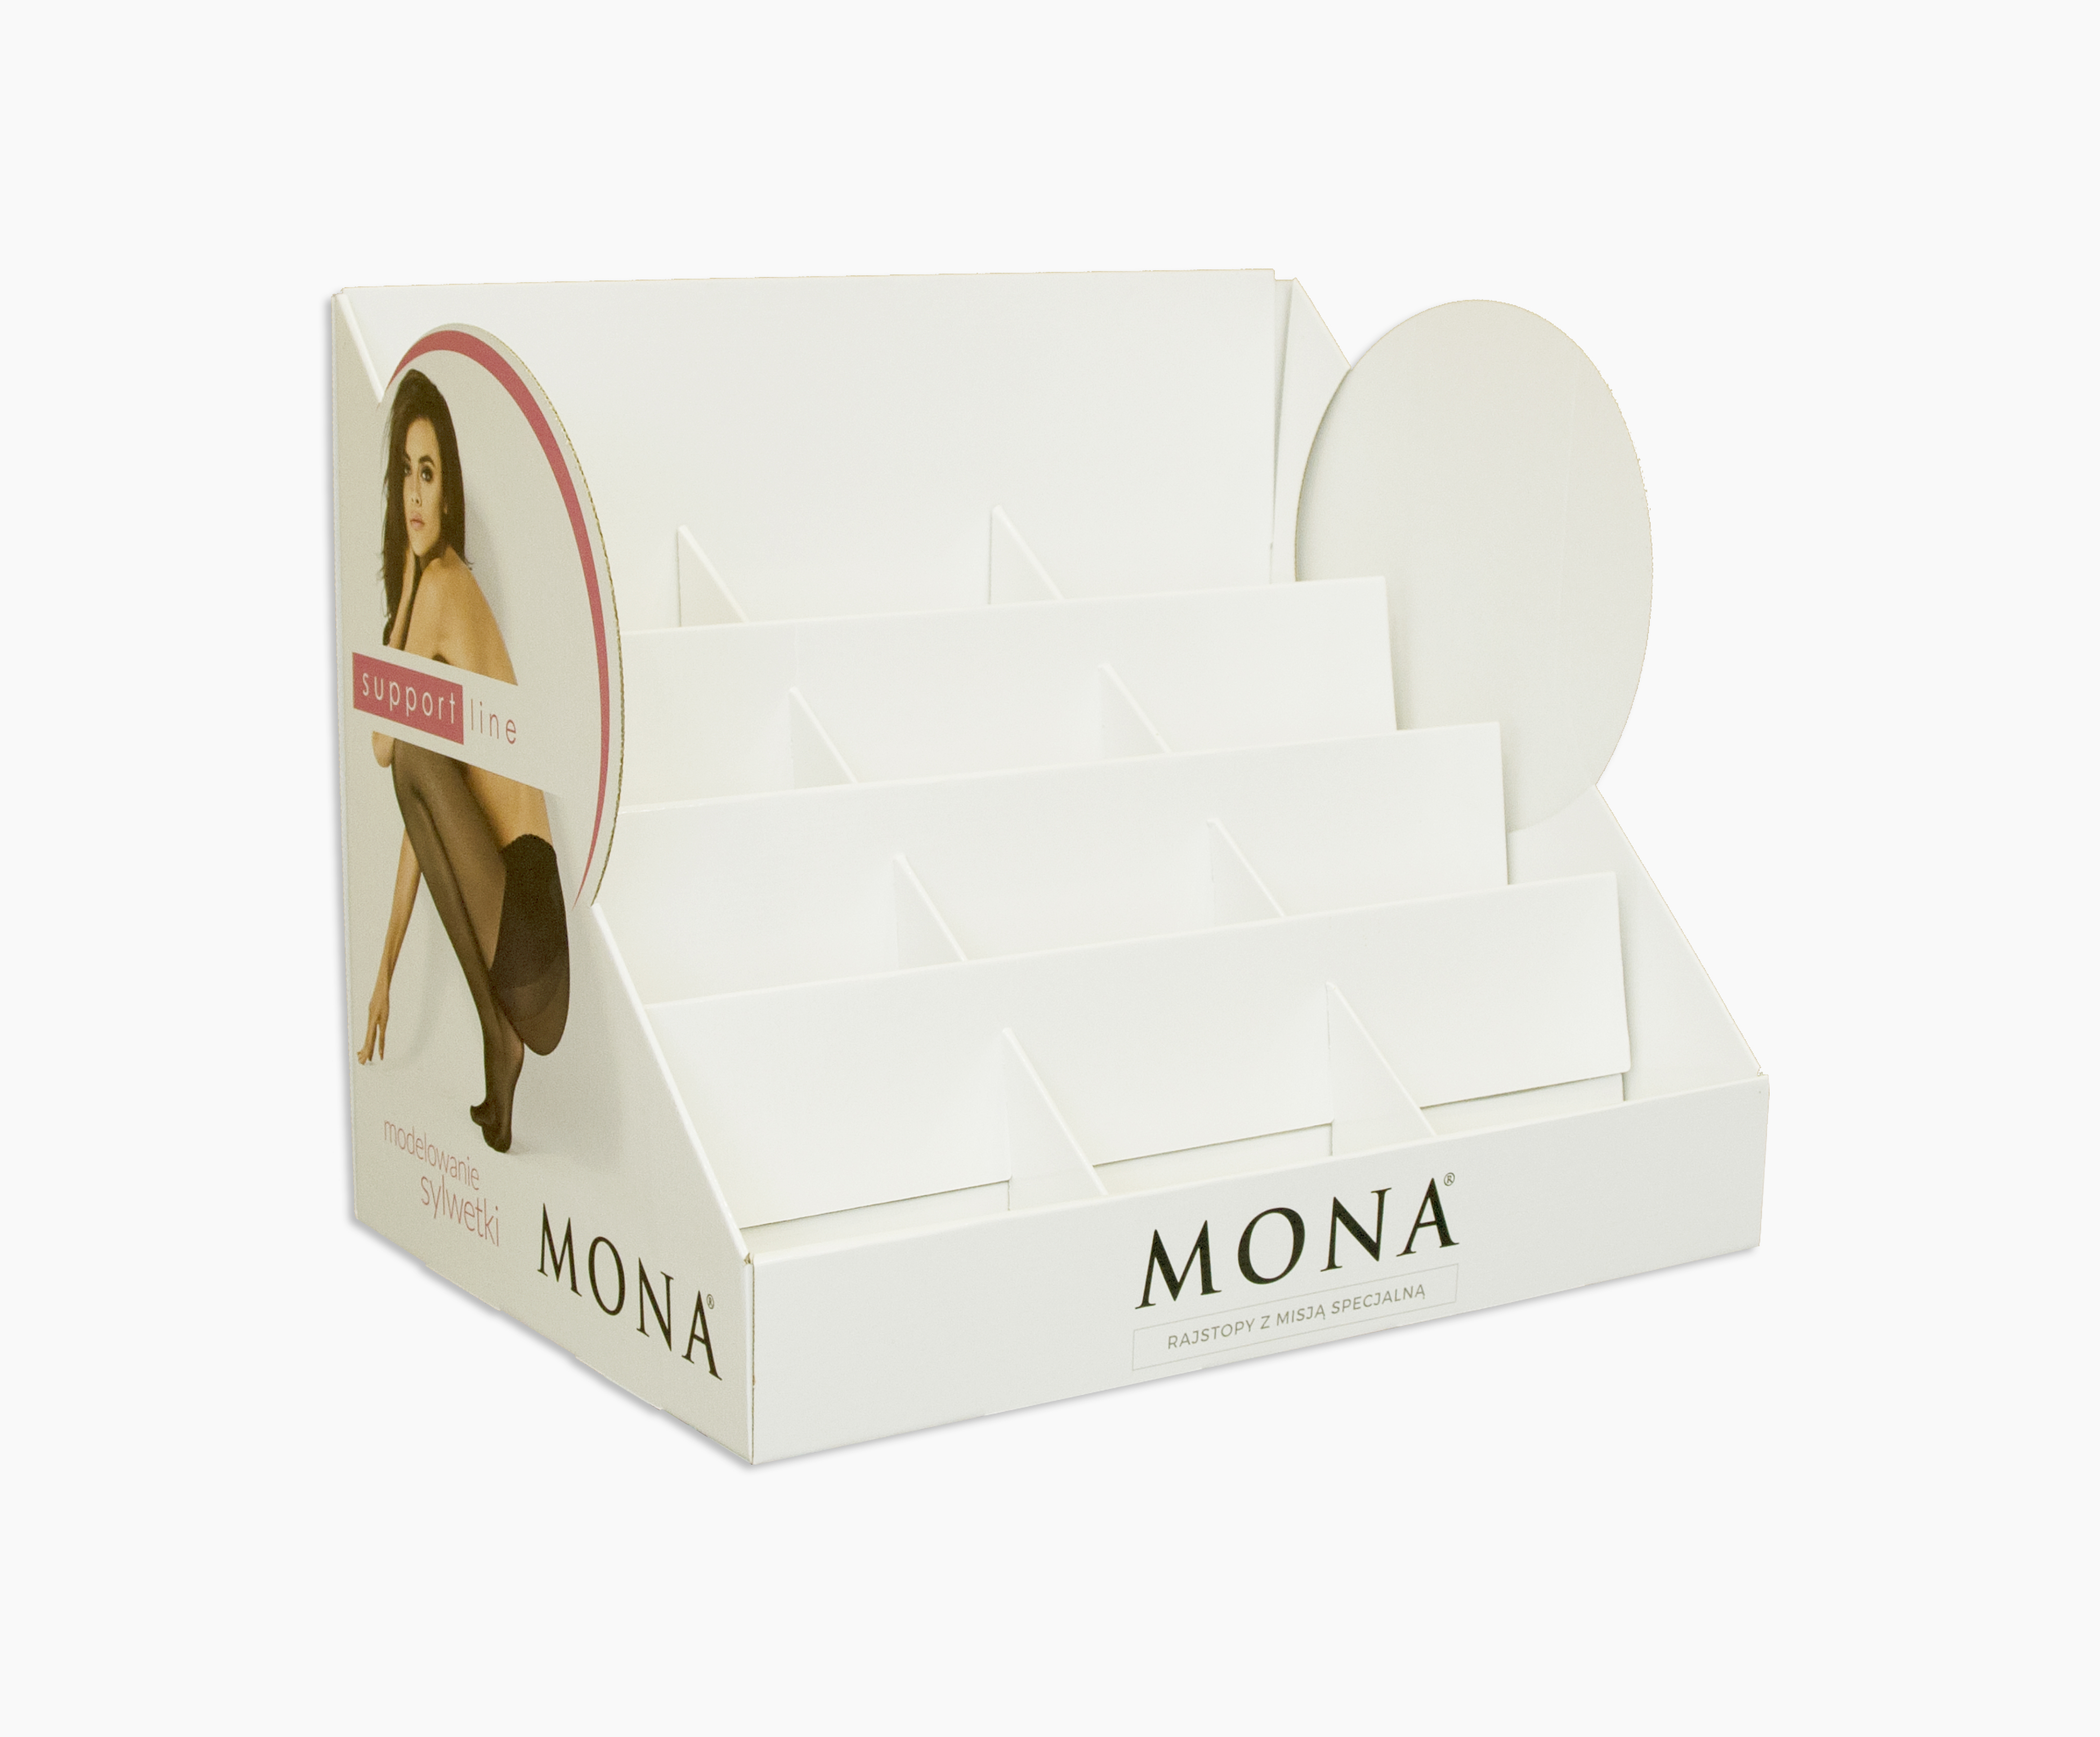 stand36_mona_2a